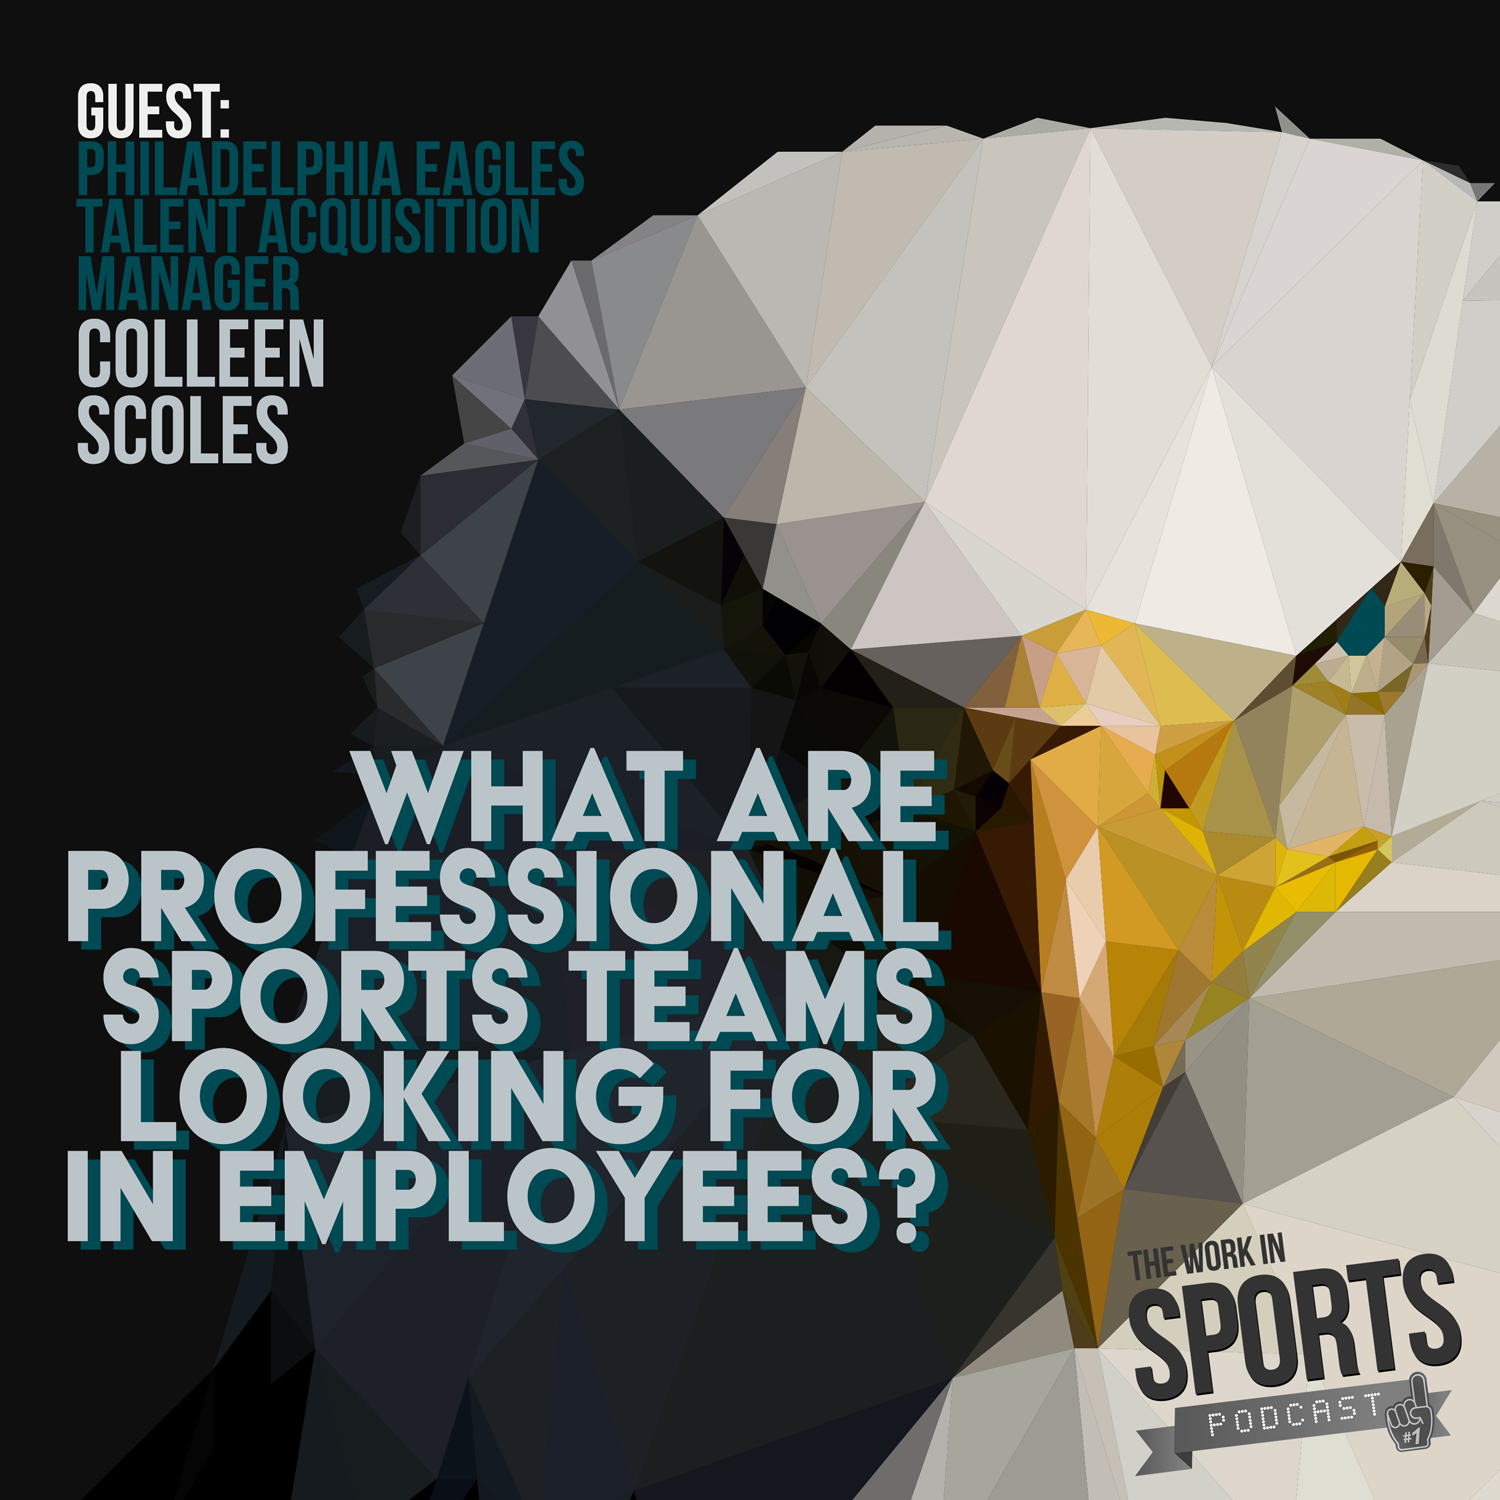 Philadelphia Eagles Talent Acquisition Manager Colleen Scoles